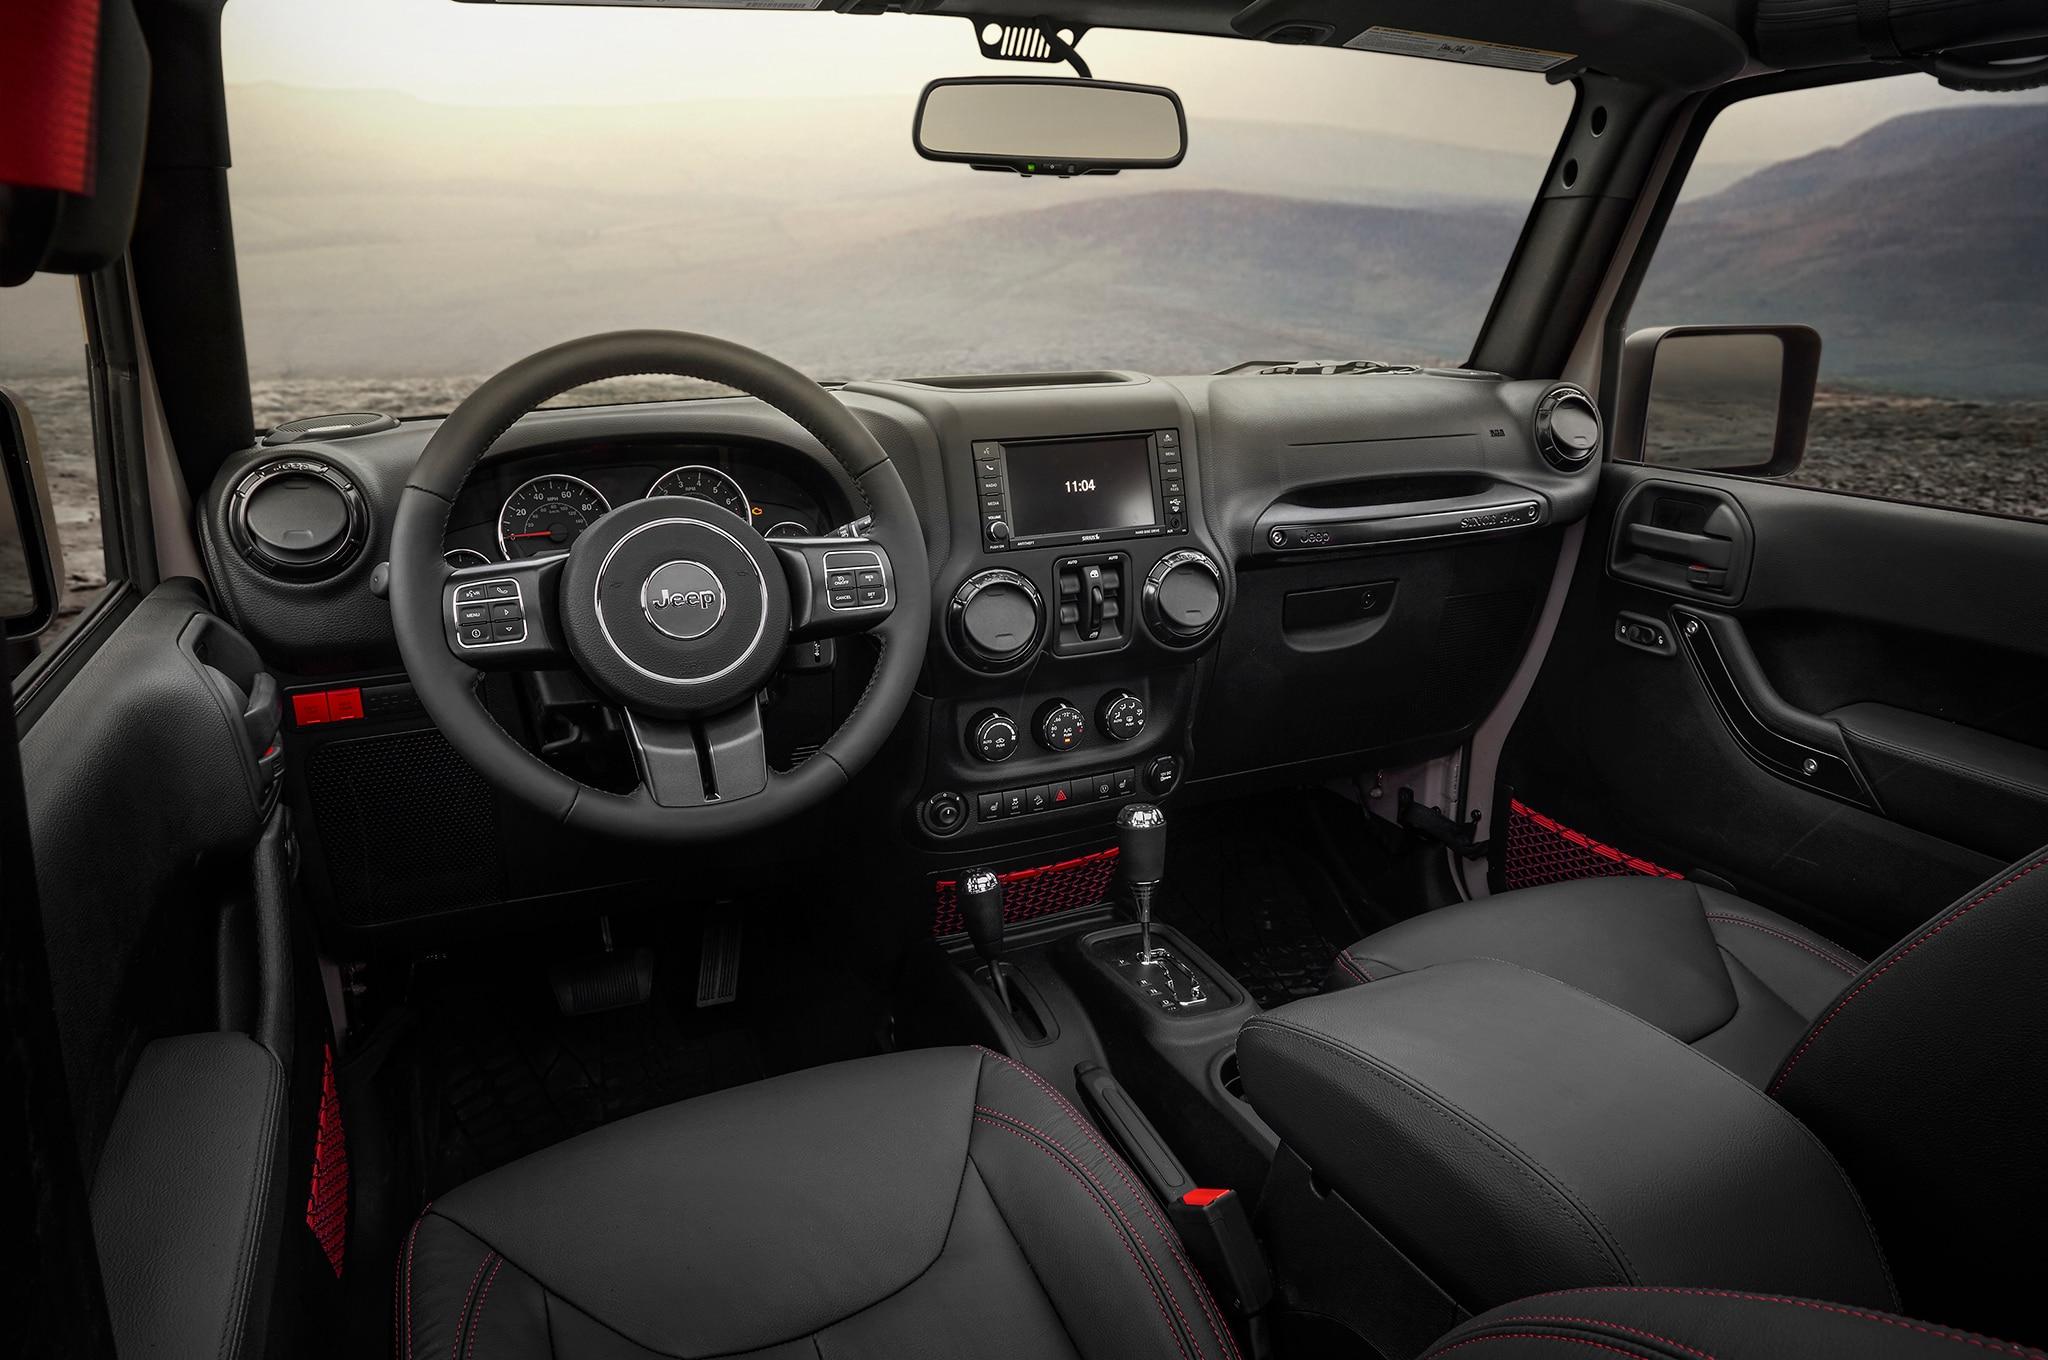 2017 Jeep Wrangler Rubicon Recon Is The Most Off Road Ready Jk Wrangler Yet Automobile Magazine